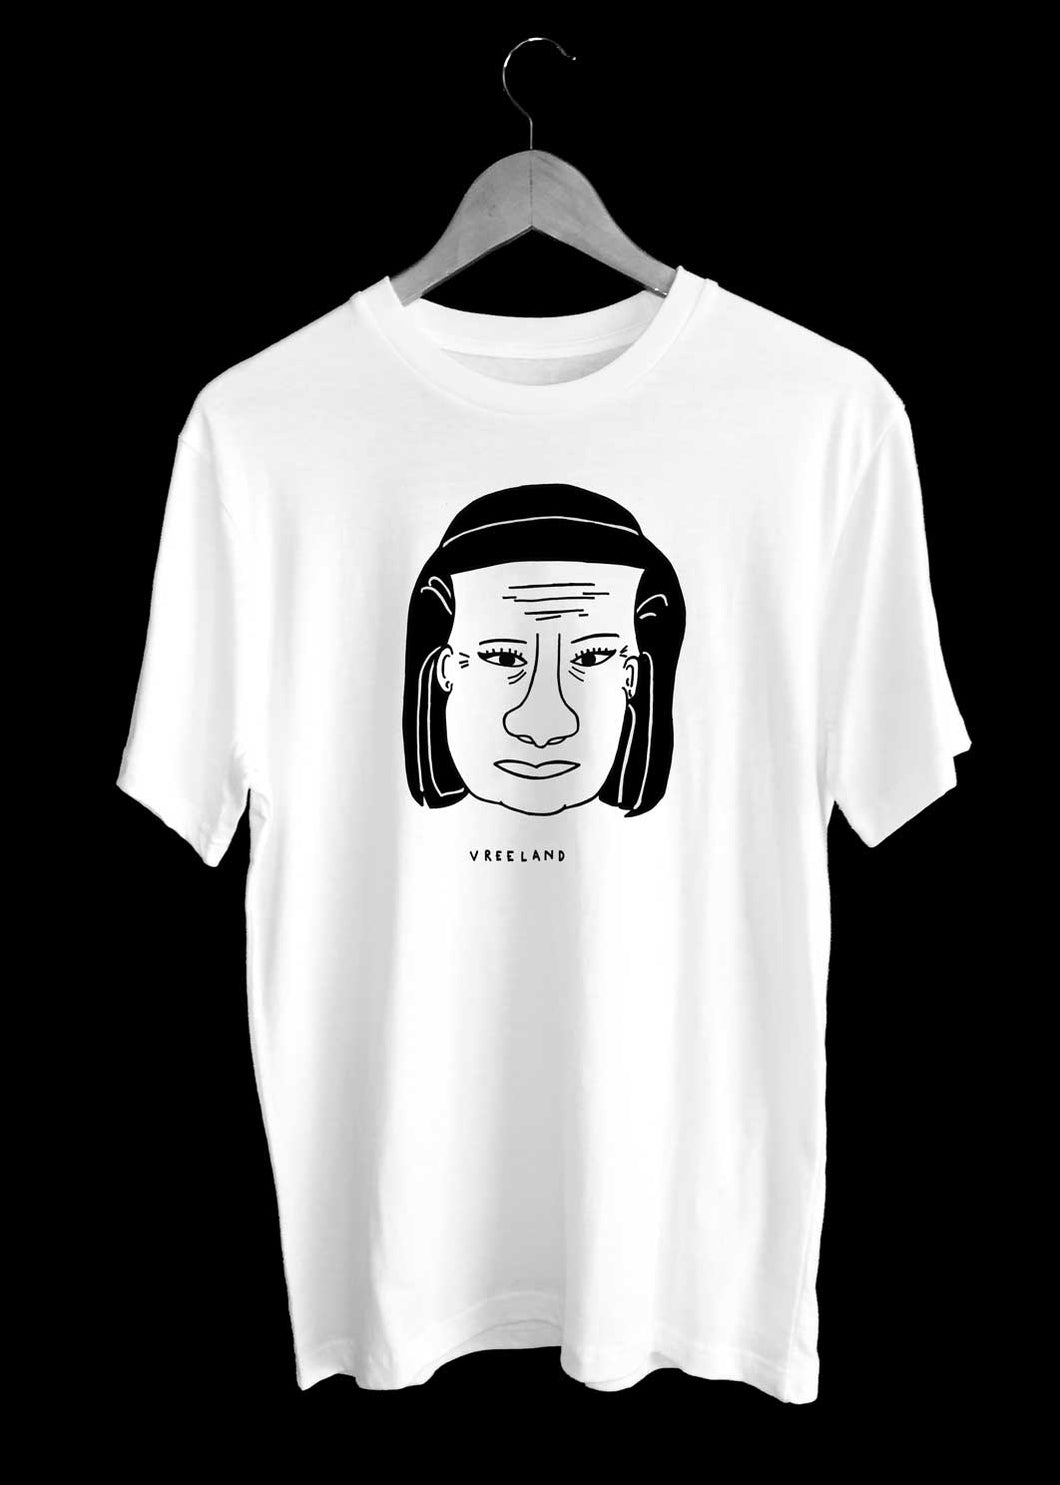 Diana VREELAND Illustration T-Shirt by TILONE